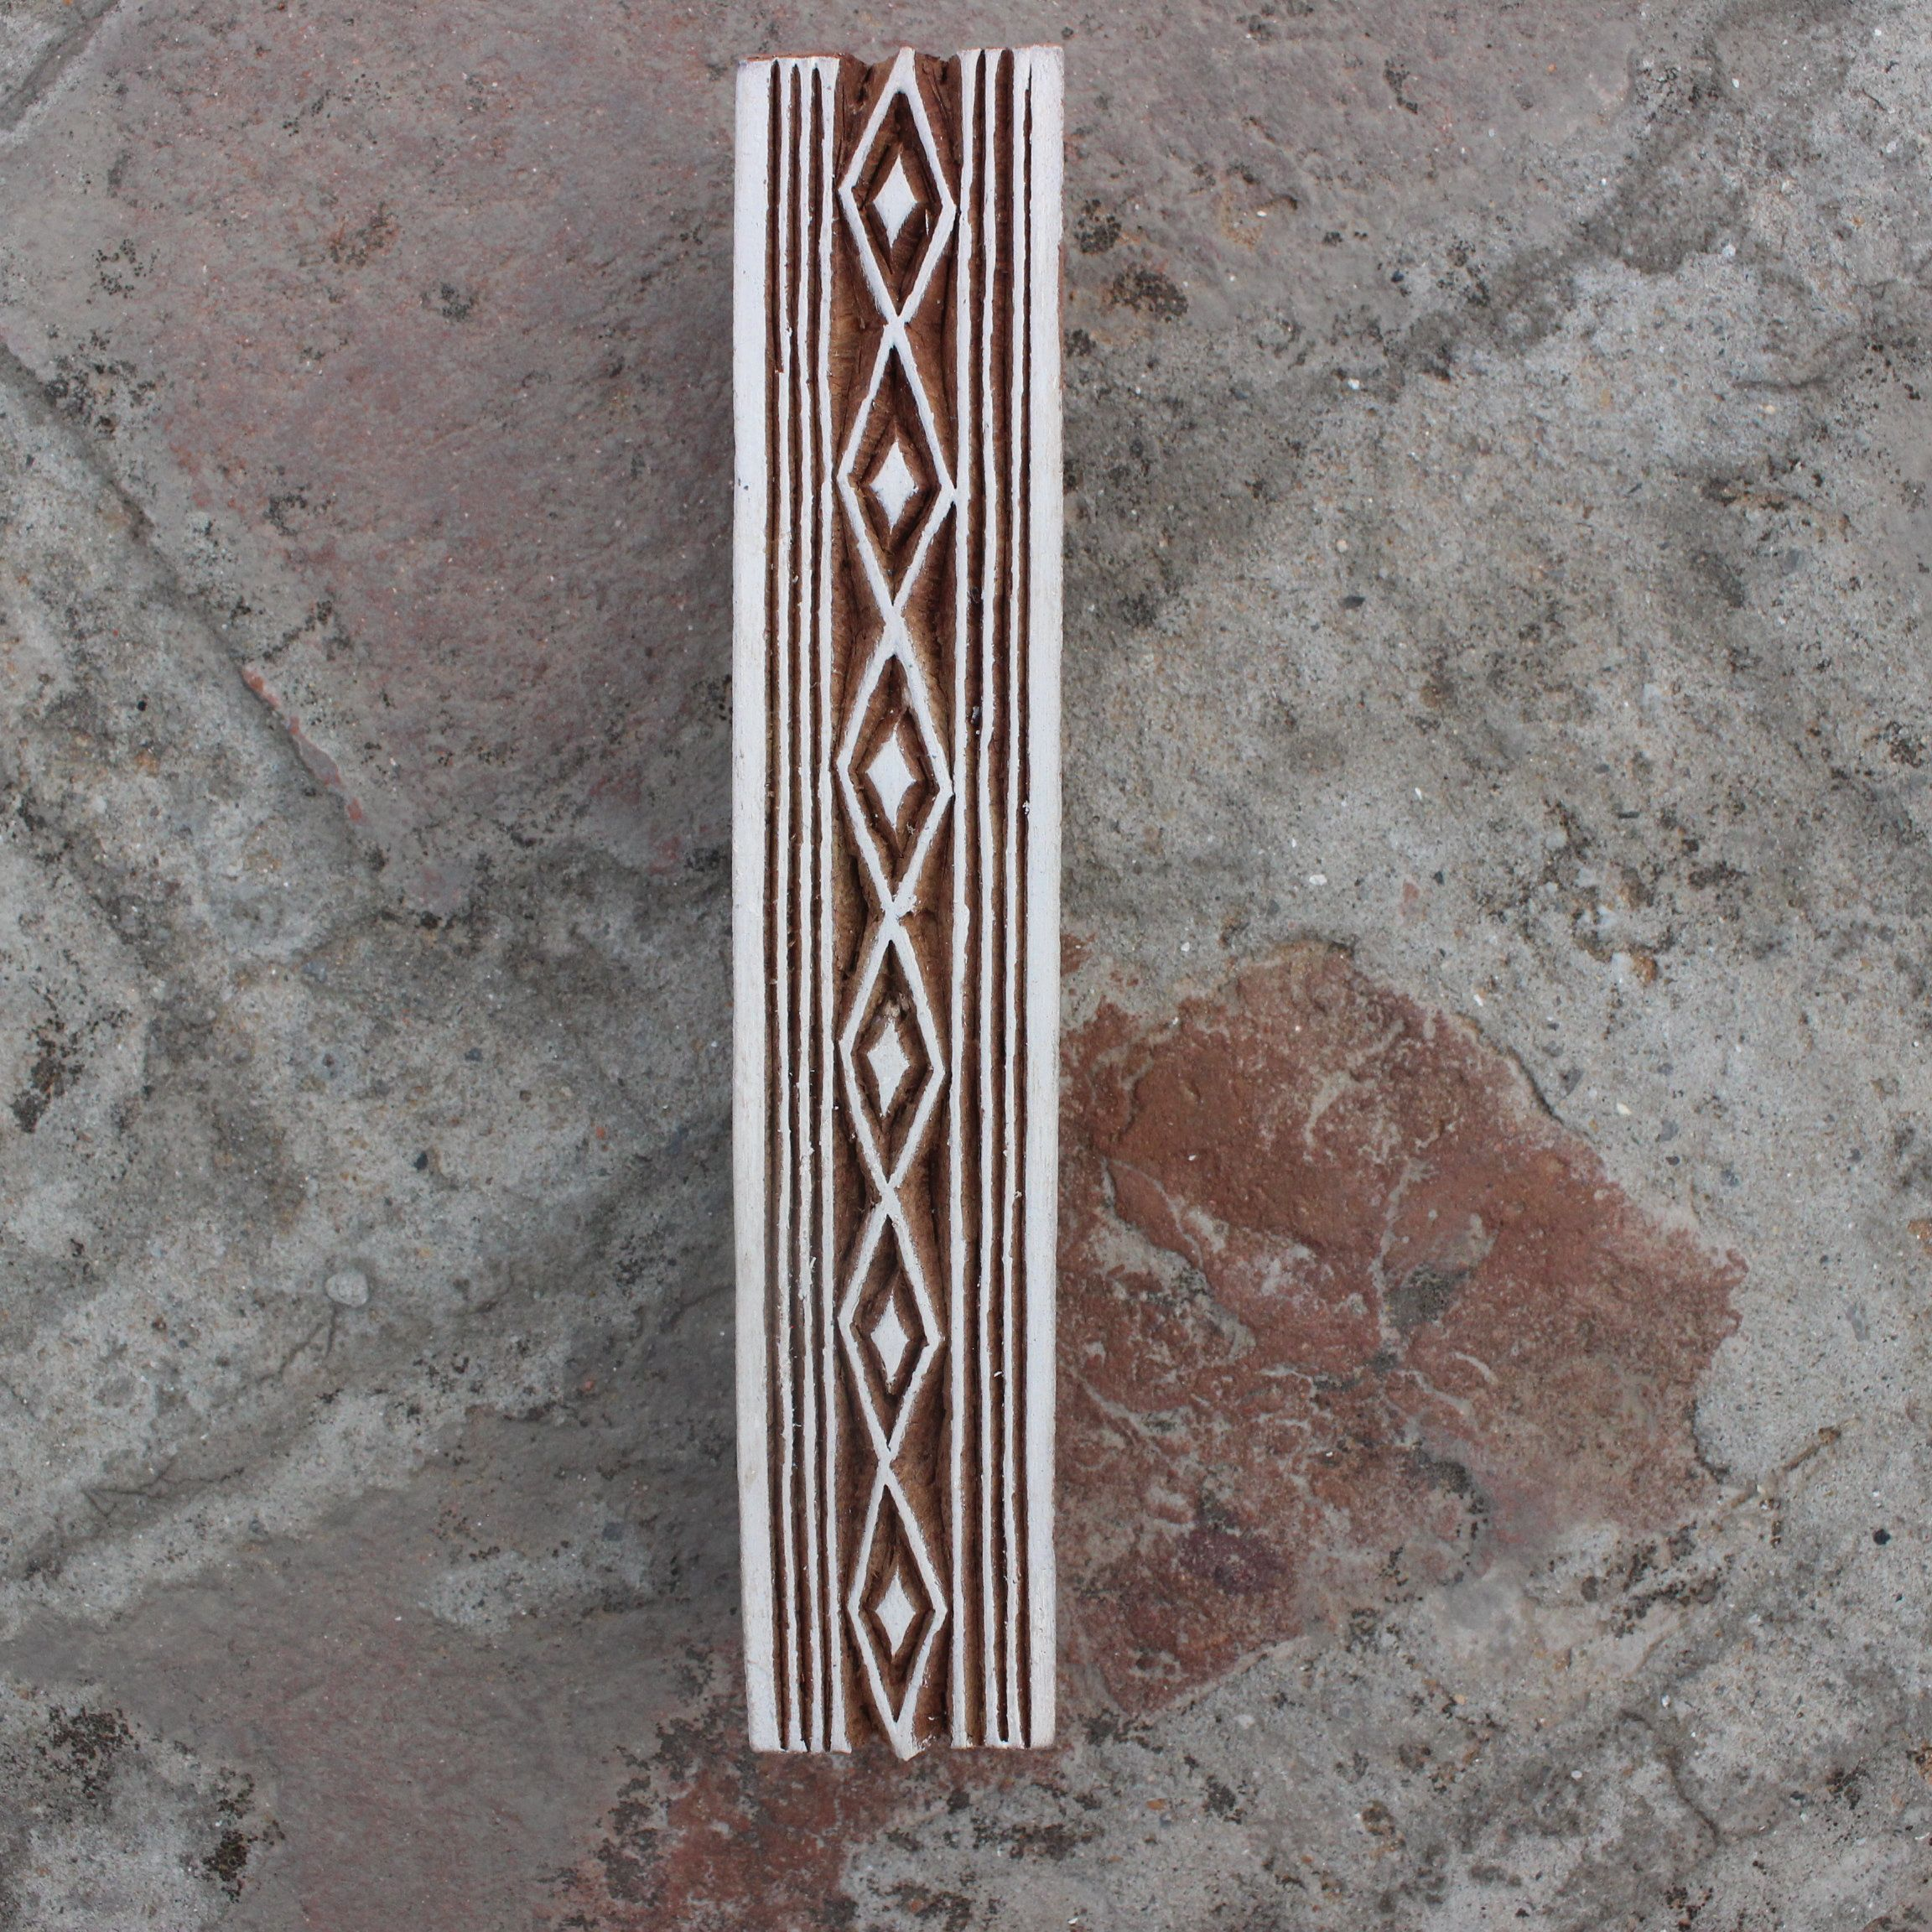 Celtic Border Fabric Stamp Hand Carved Stamp Geometric Stamp Indian Textile Printing Block For Printing Ethnic Soap Stamp Celtic Textile